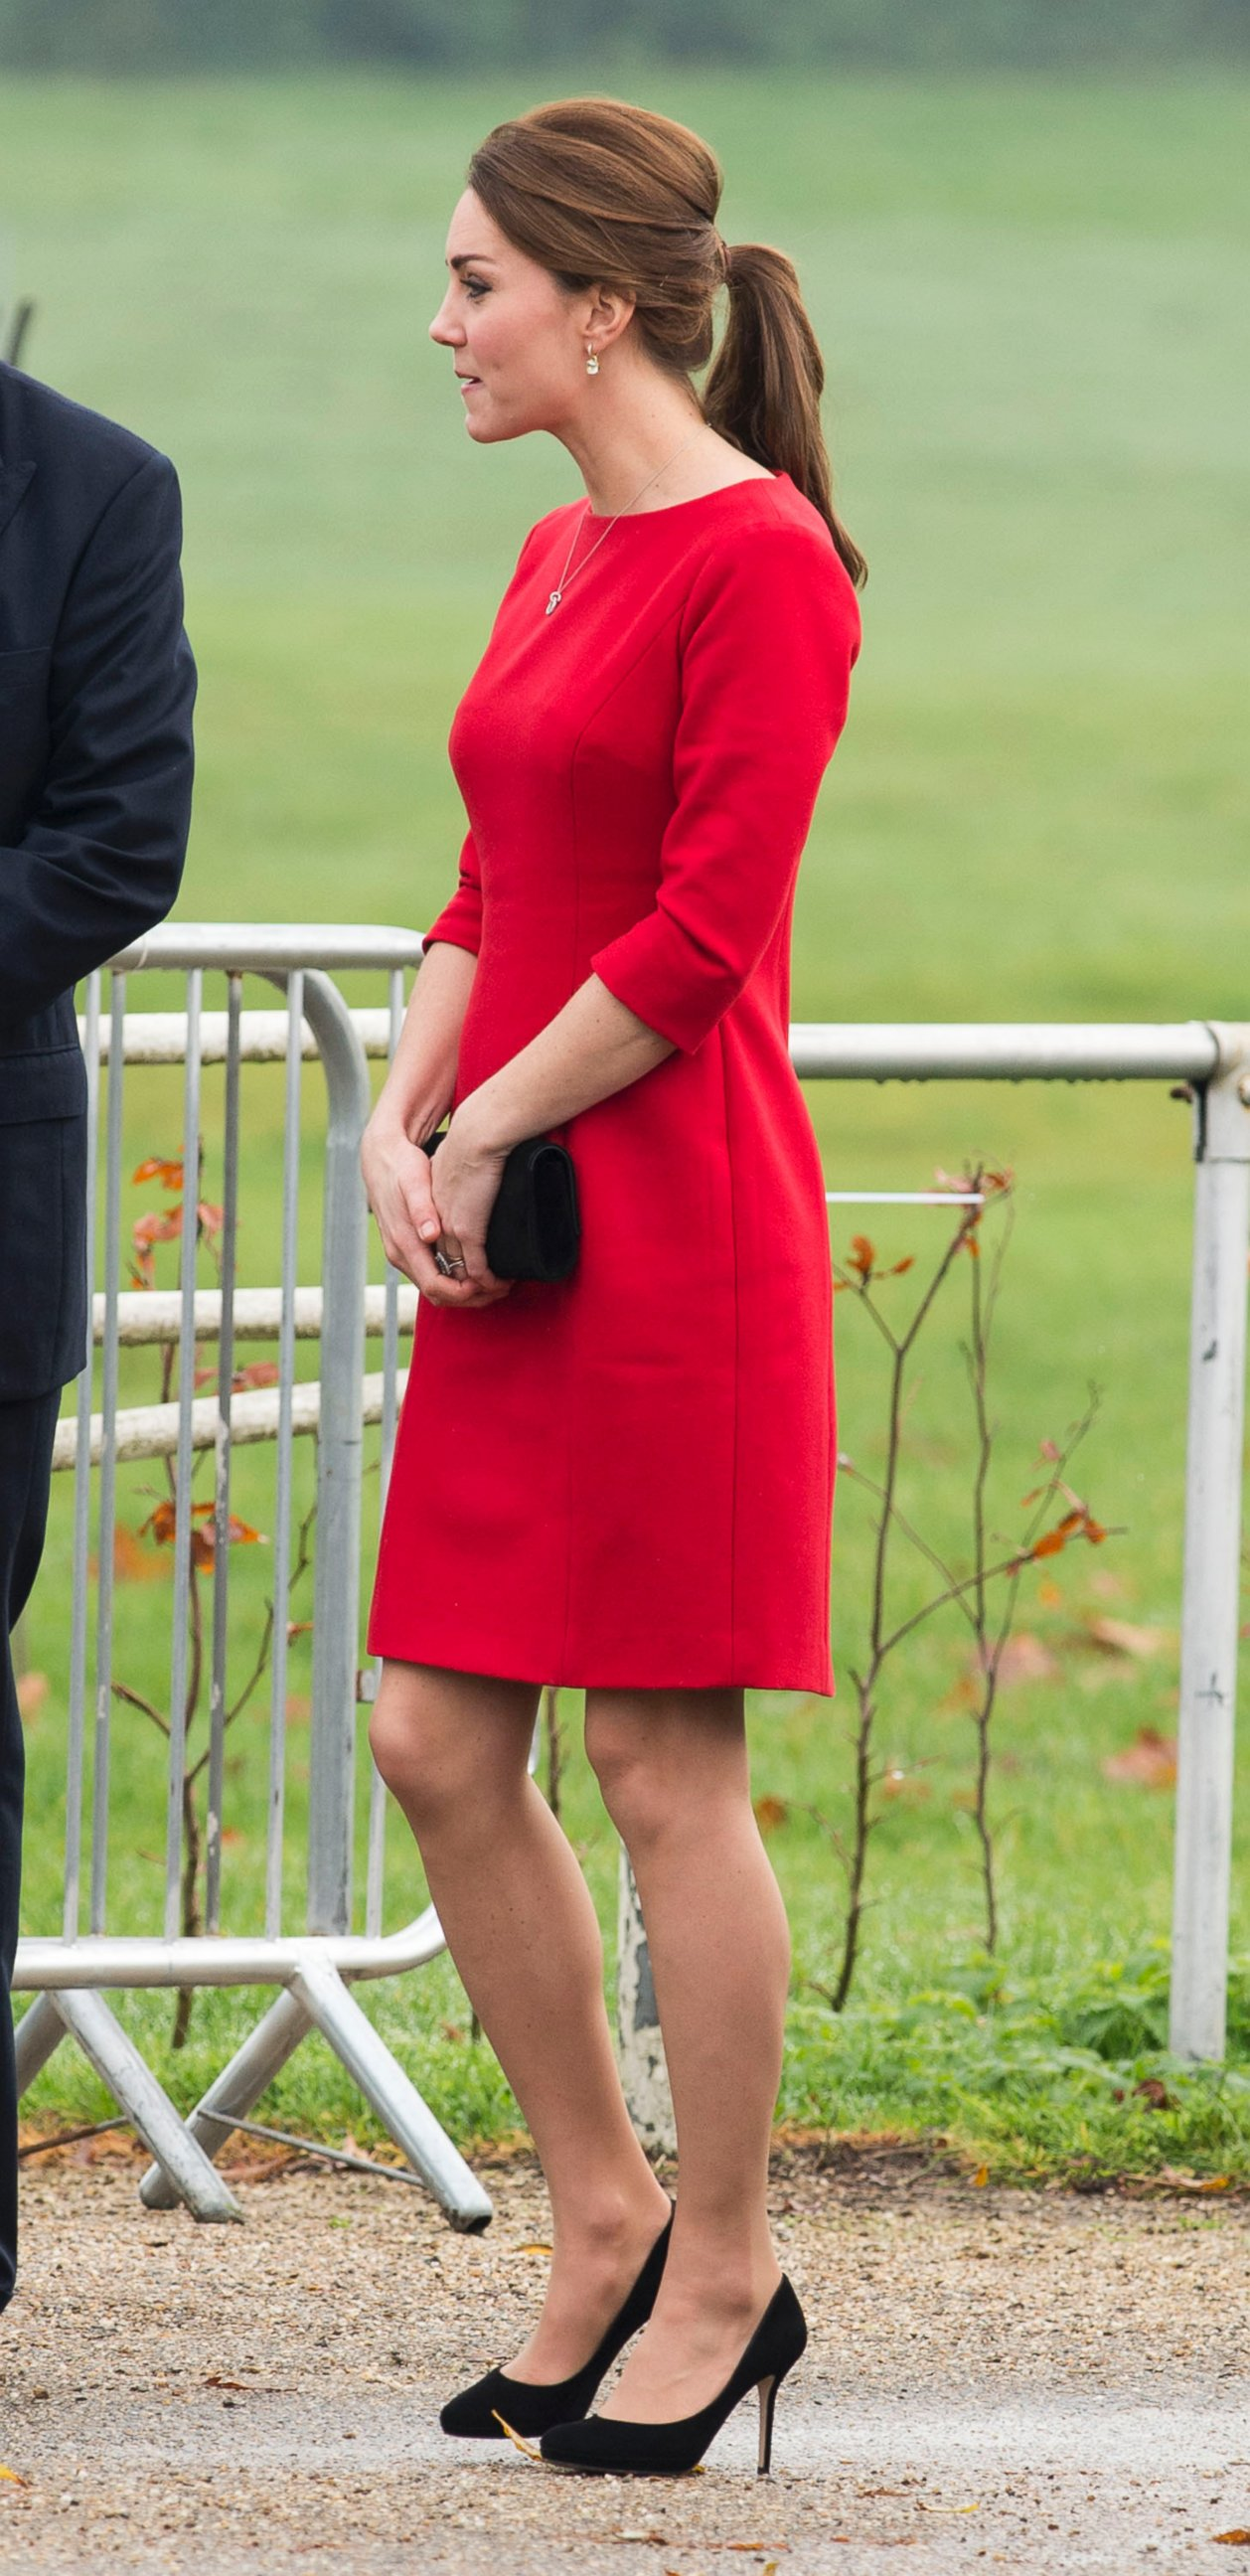 Kate Middleton Attends a Charity Launch in Red